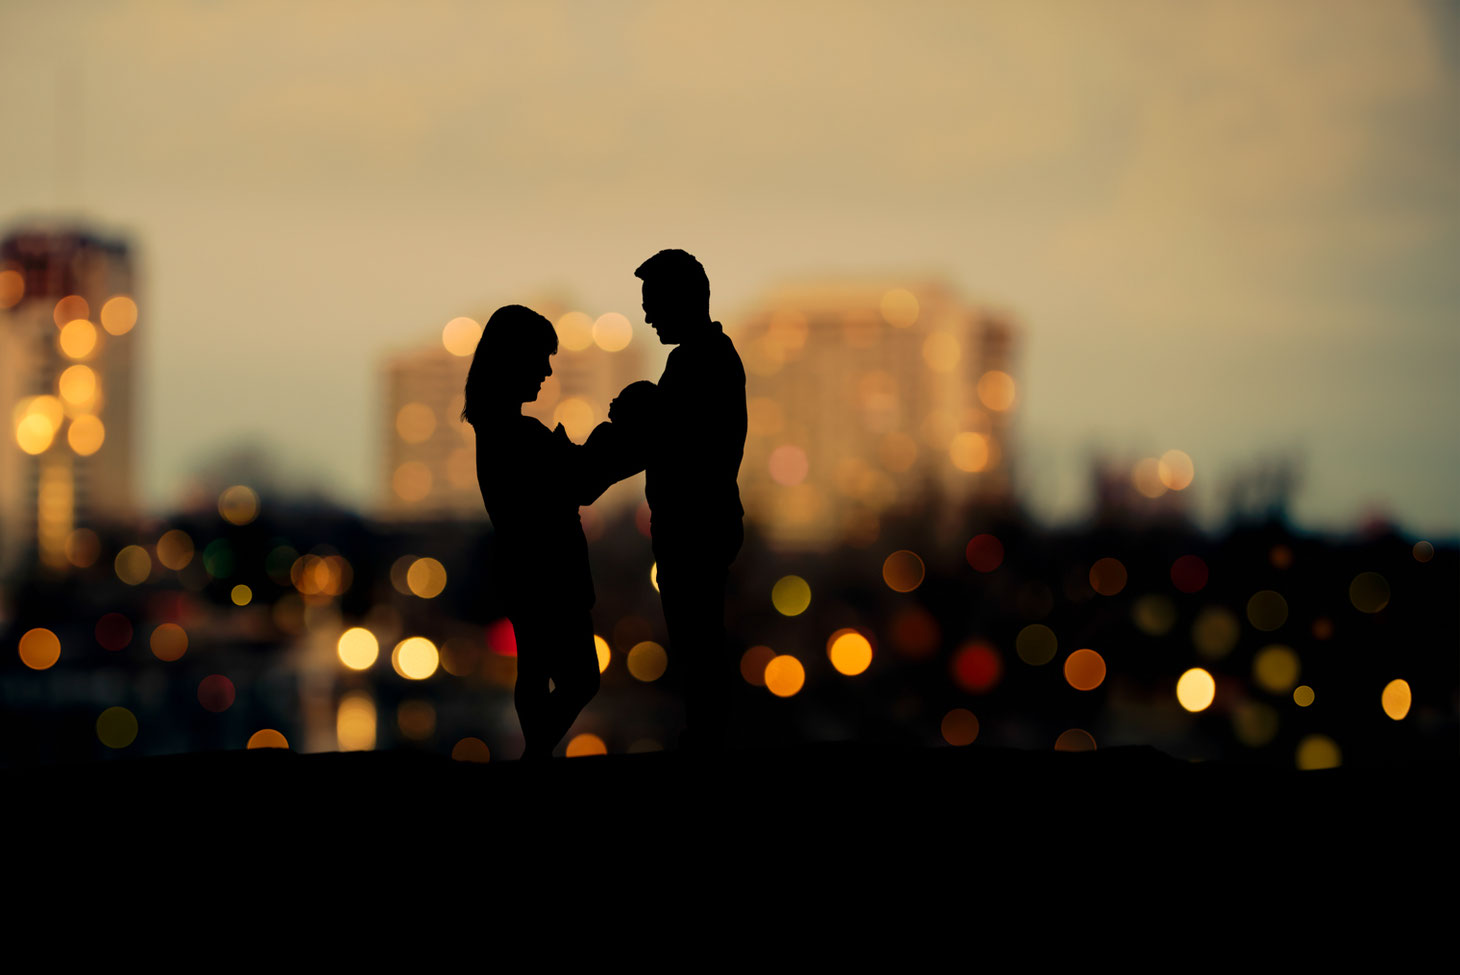 silhouette of mother, new baby, and father against bokeh city view at sunrise.